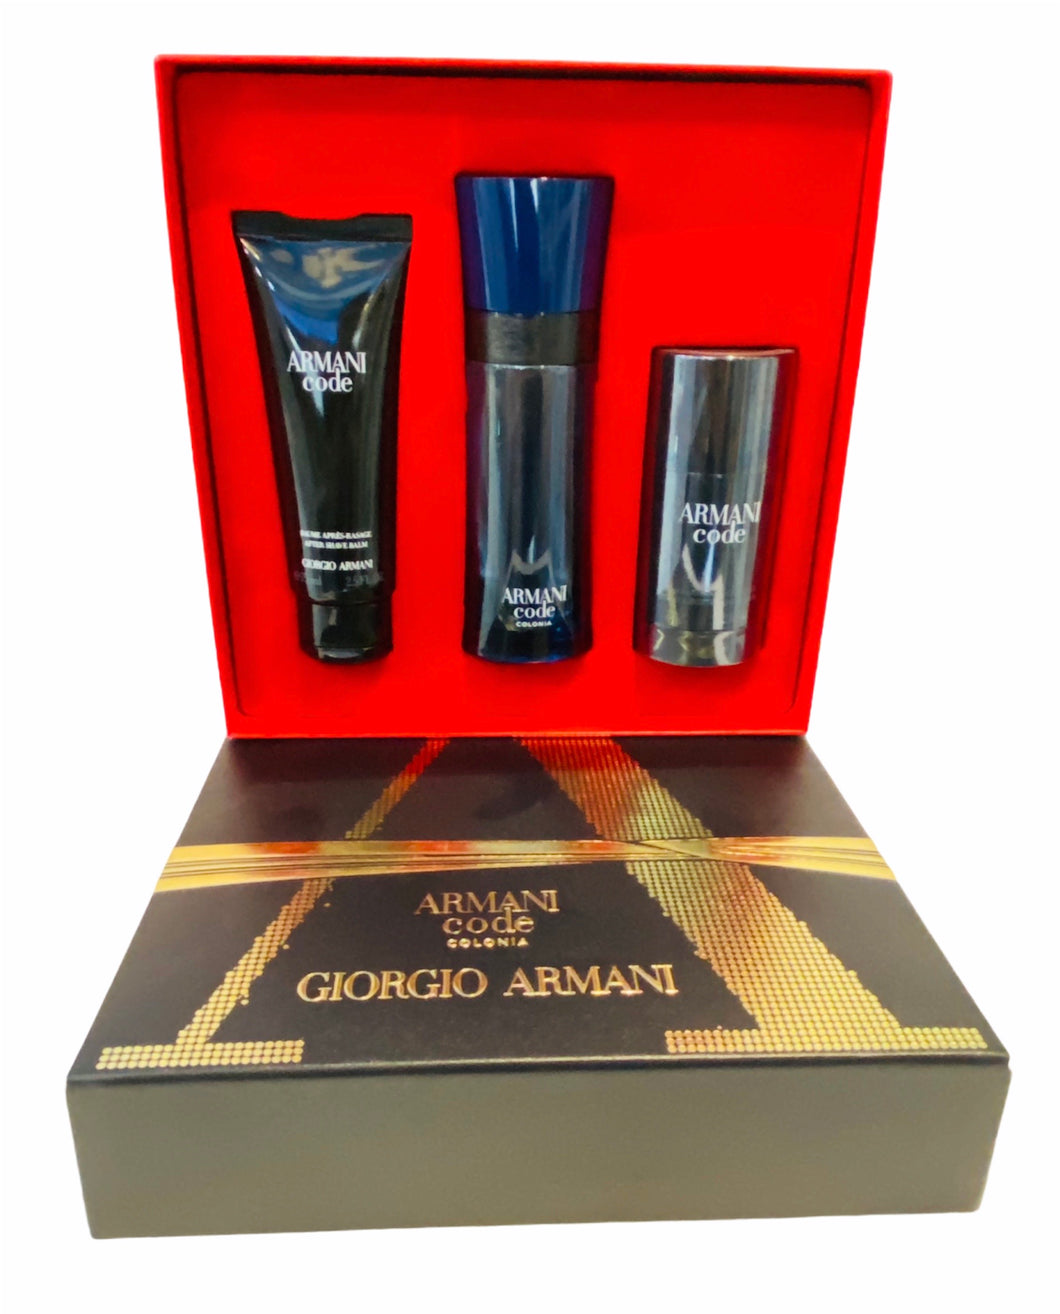 armani code colonia gift set 3 pcs eau de toilette  for men's - alwaysspecialgifts.com